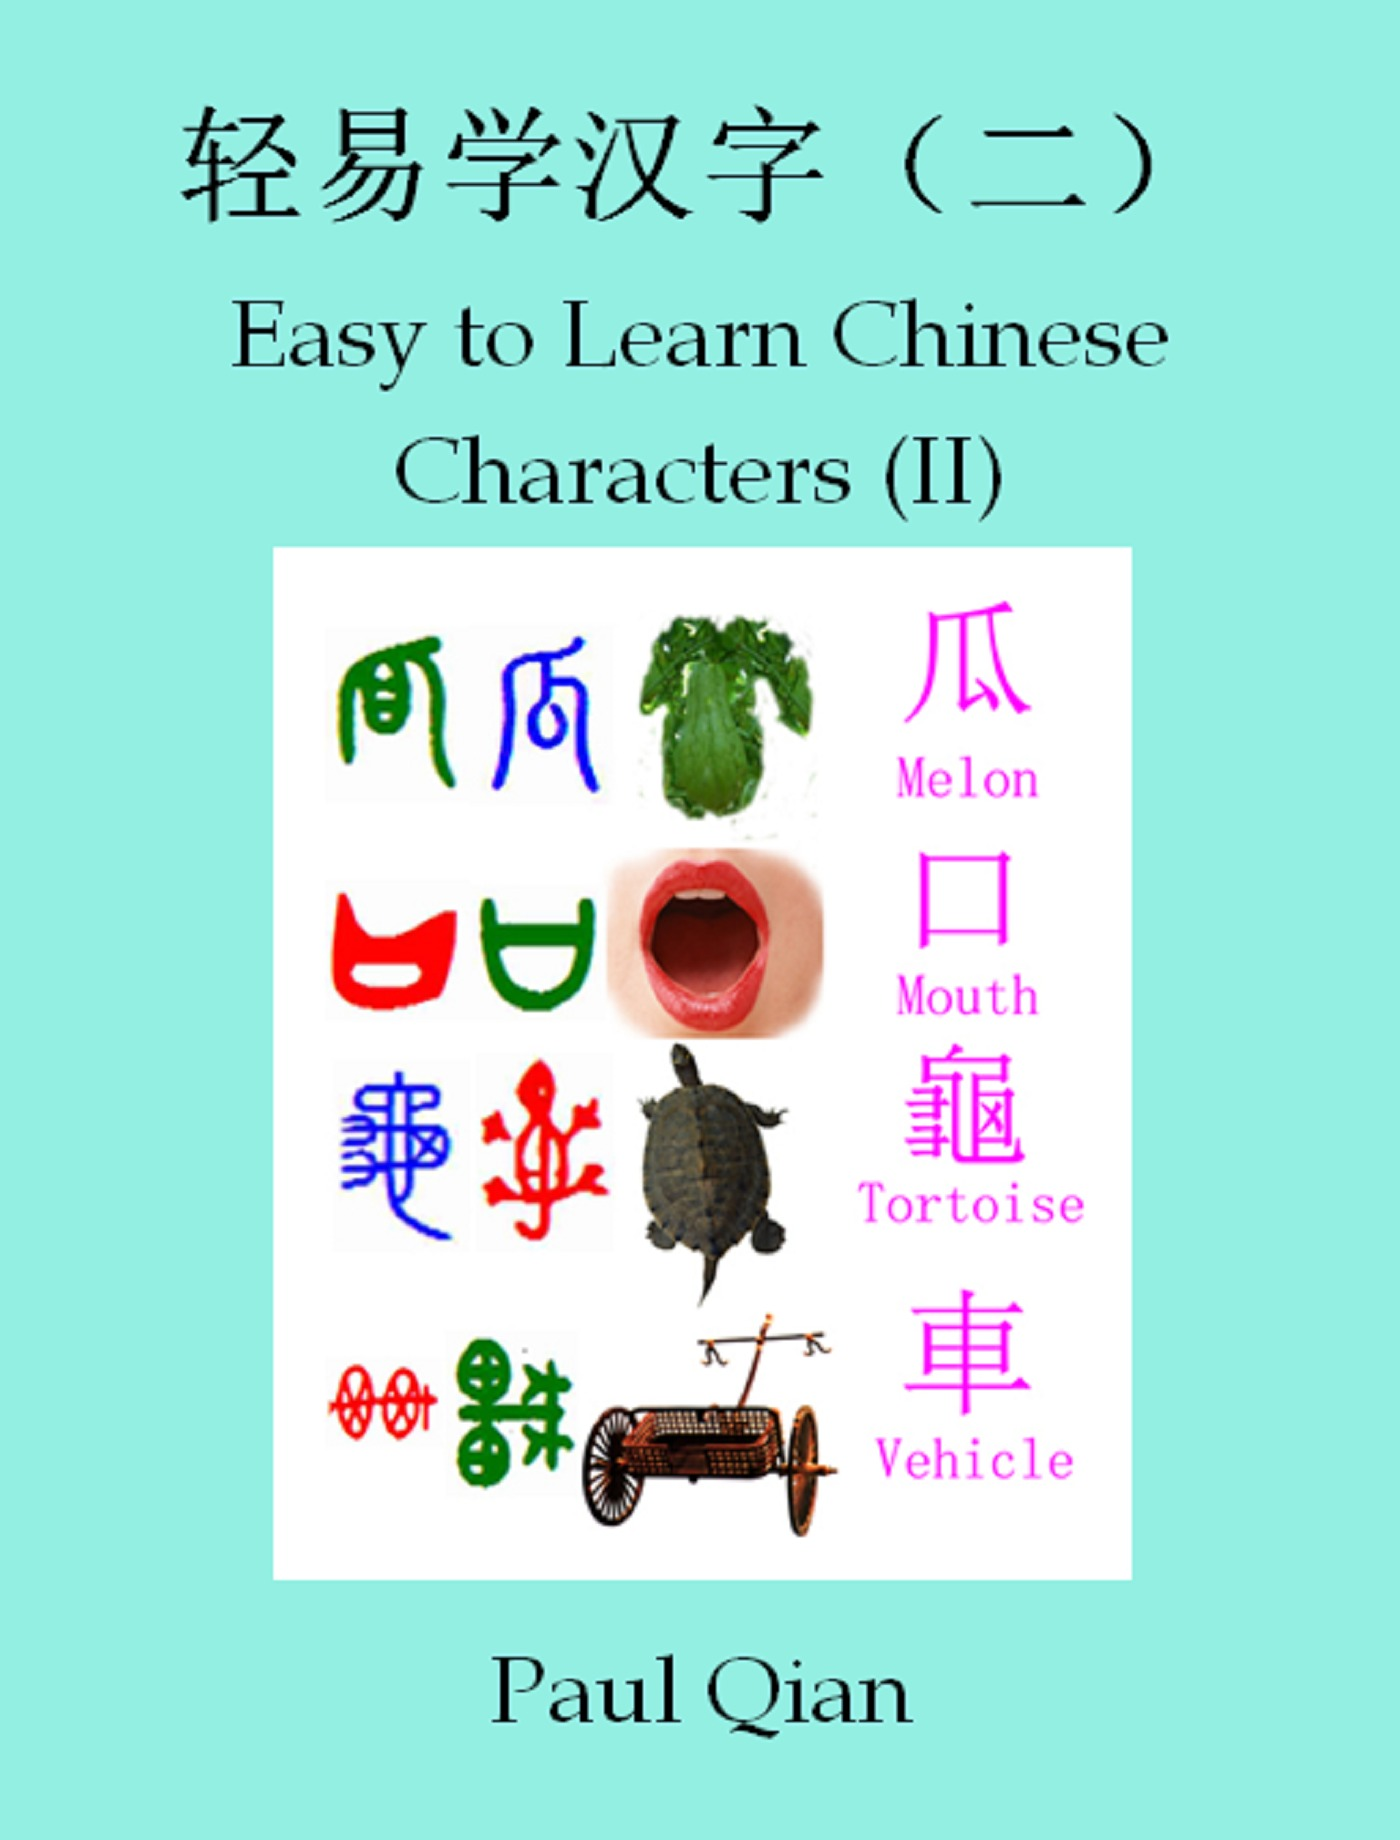 Easy to Learn Chinese Characters 2 (轻易学汉字2)